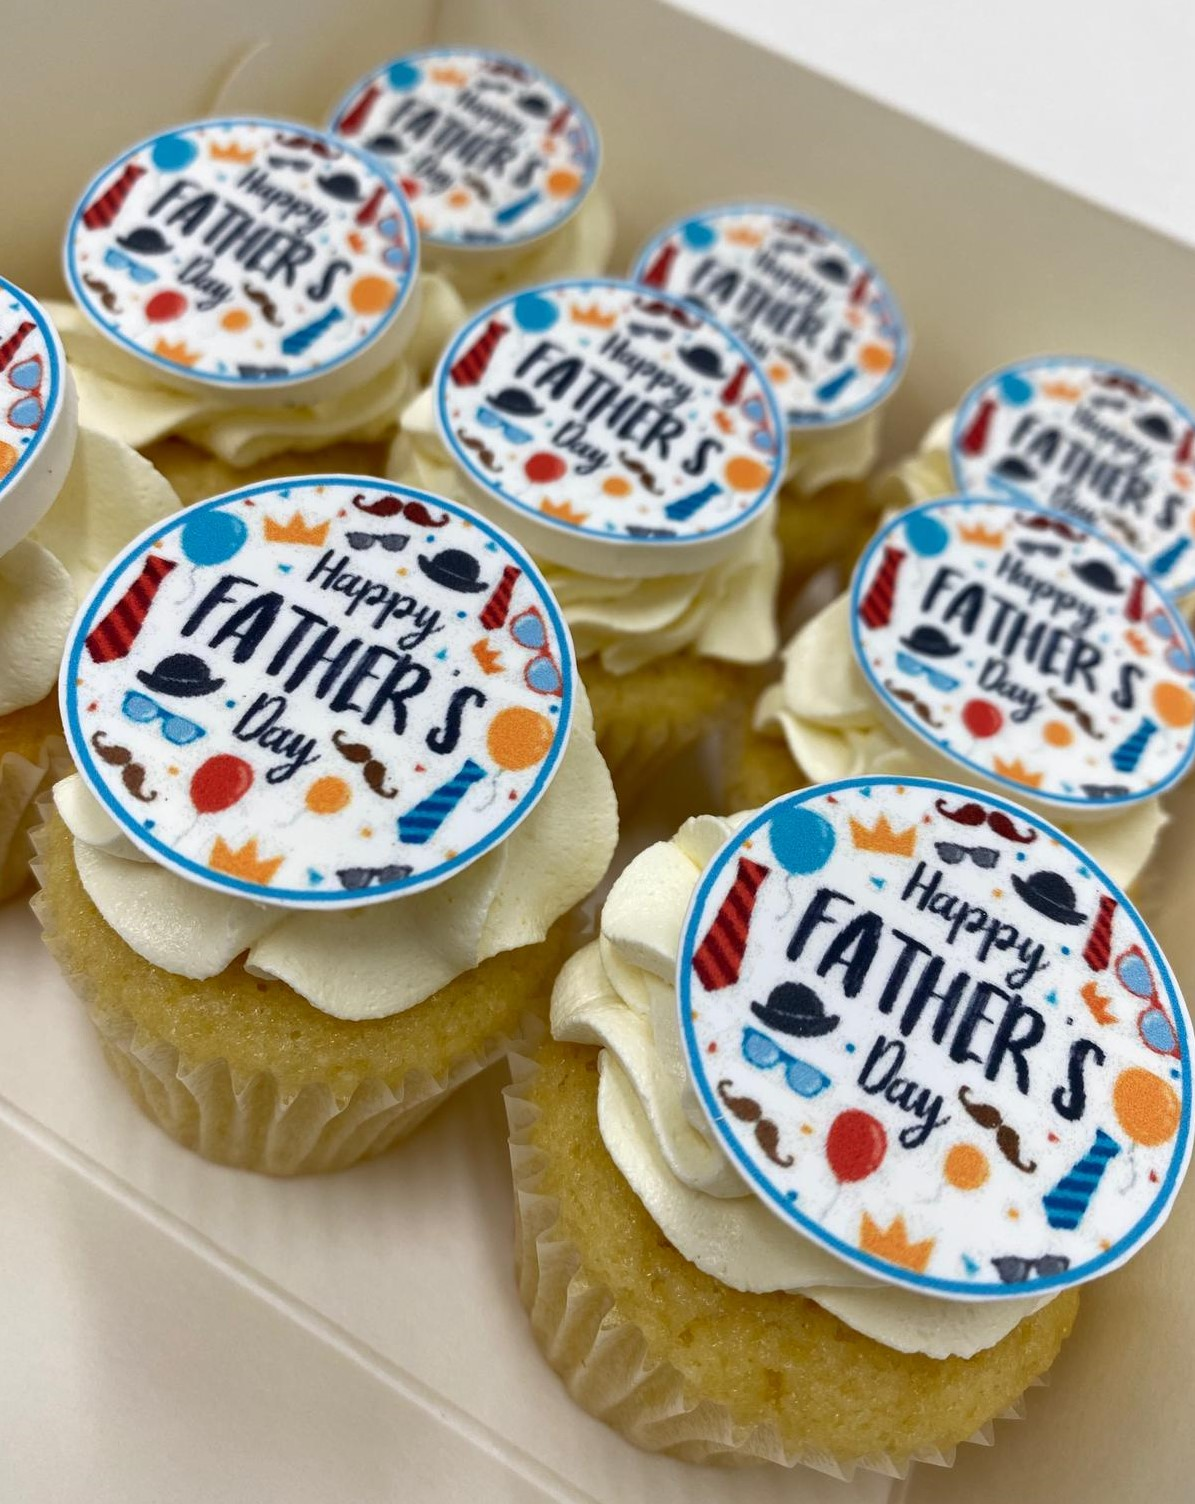 Fathers Day Cupcakes sydney